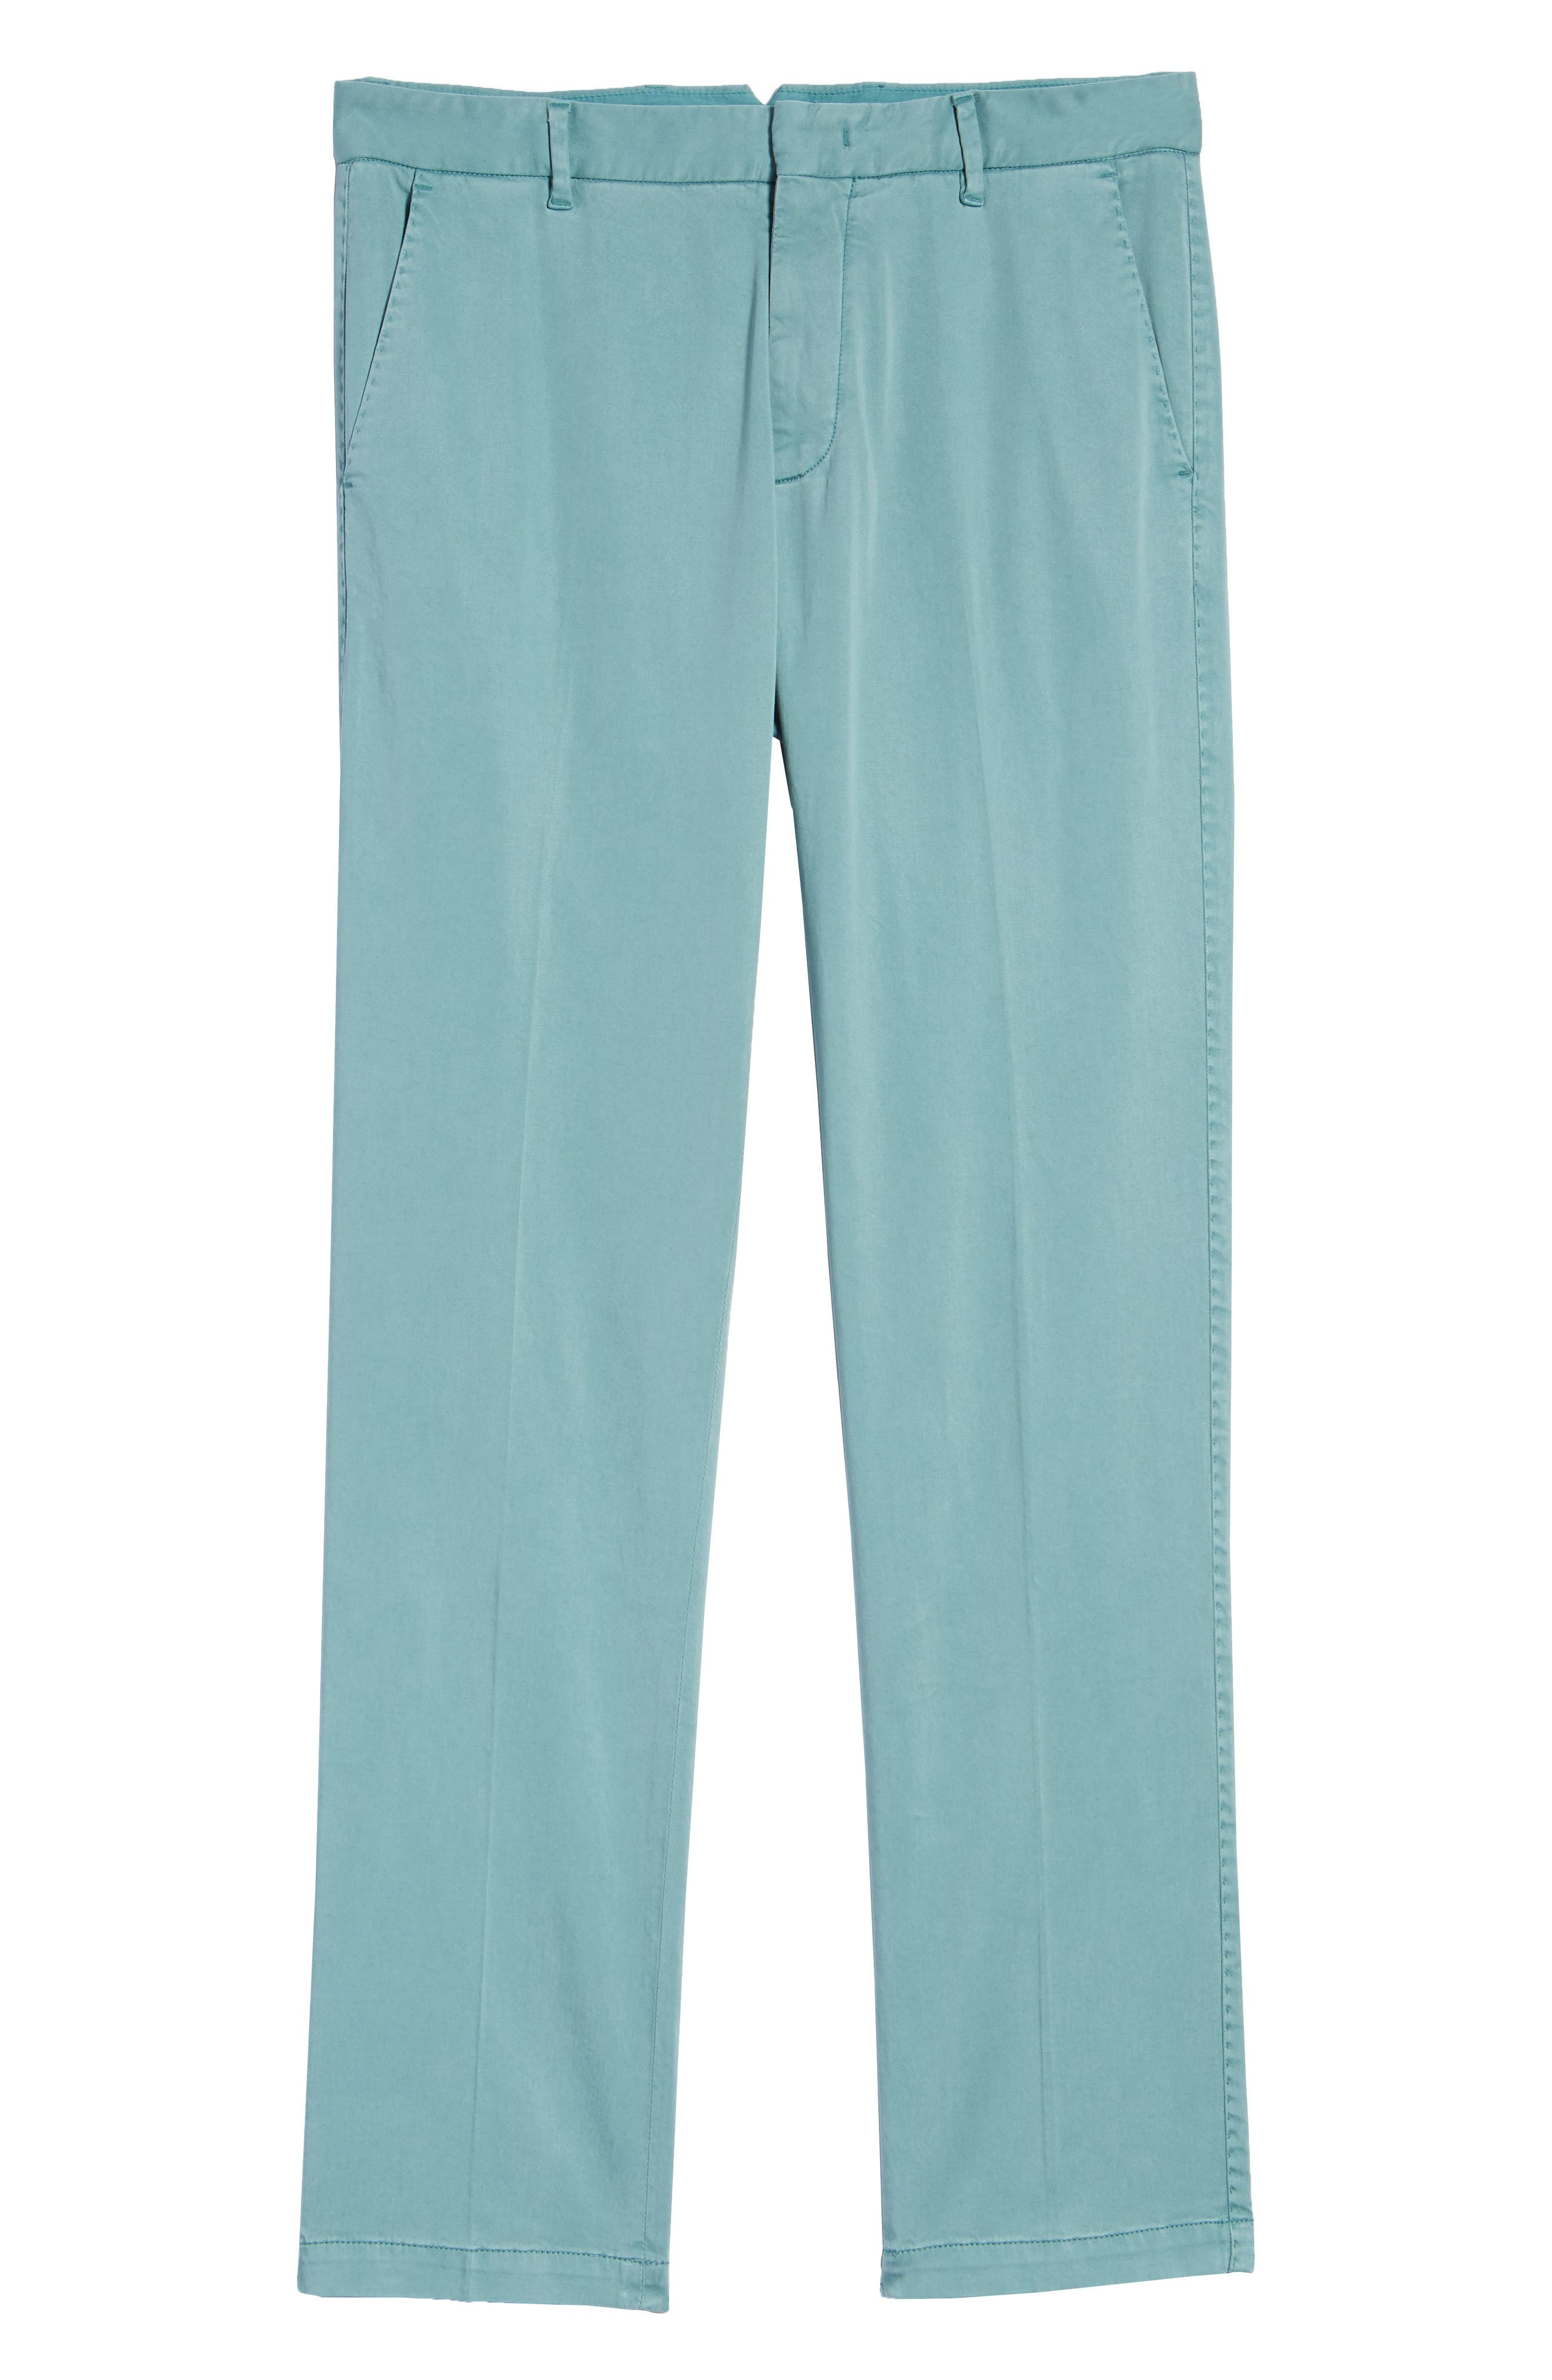 ZACHARY PRELL, Aster Straight Fit Pants, Alternate thumbnail 7, color, TEAL